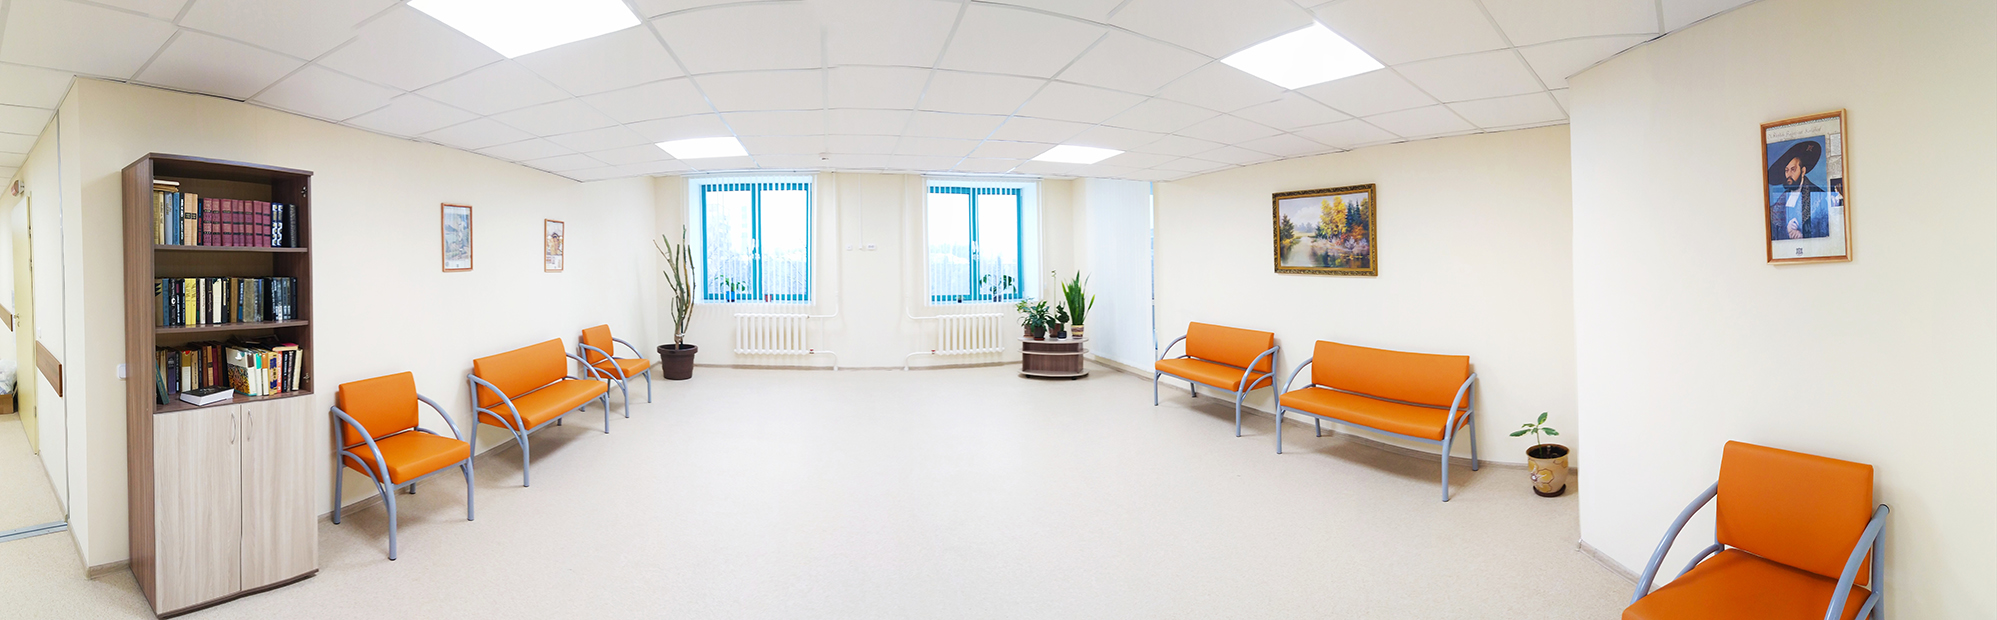 New facilities and comfortable conditions of stay in the clinic